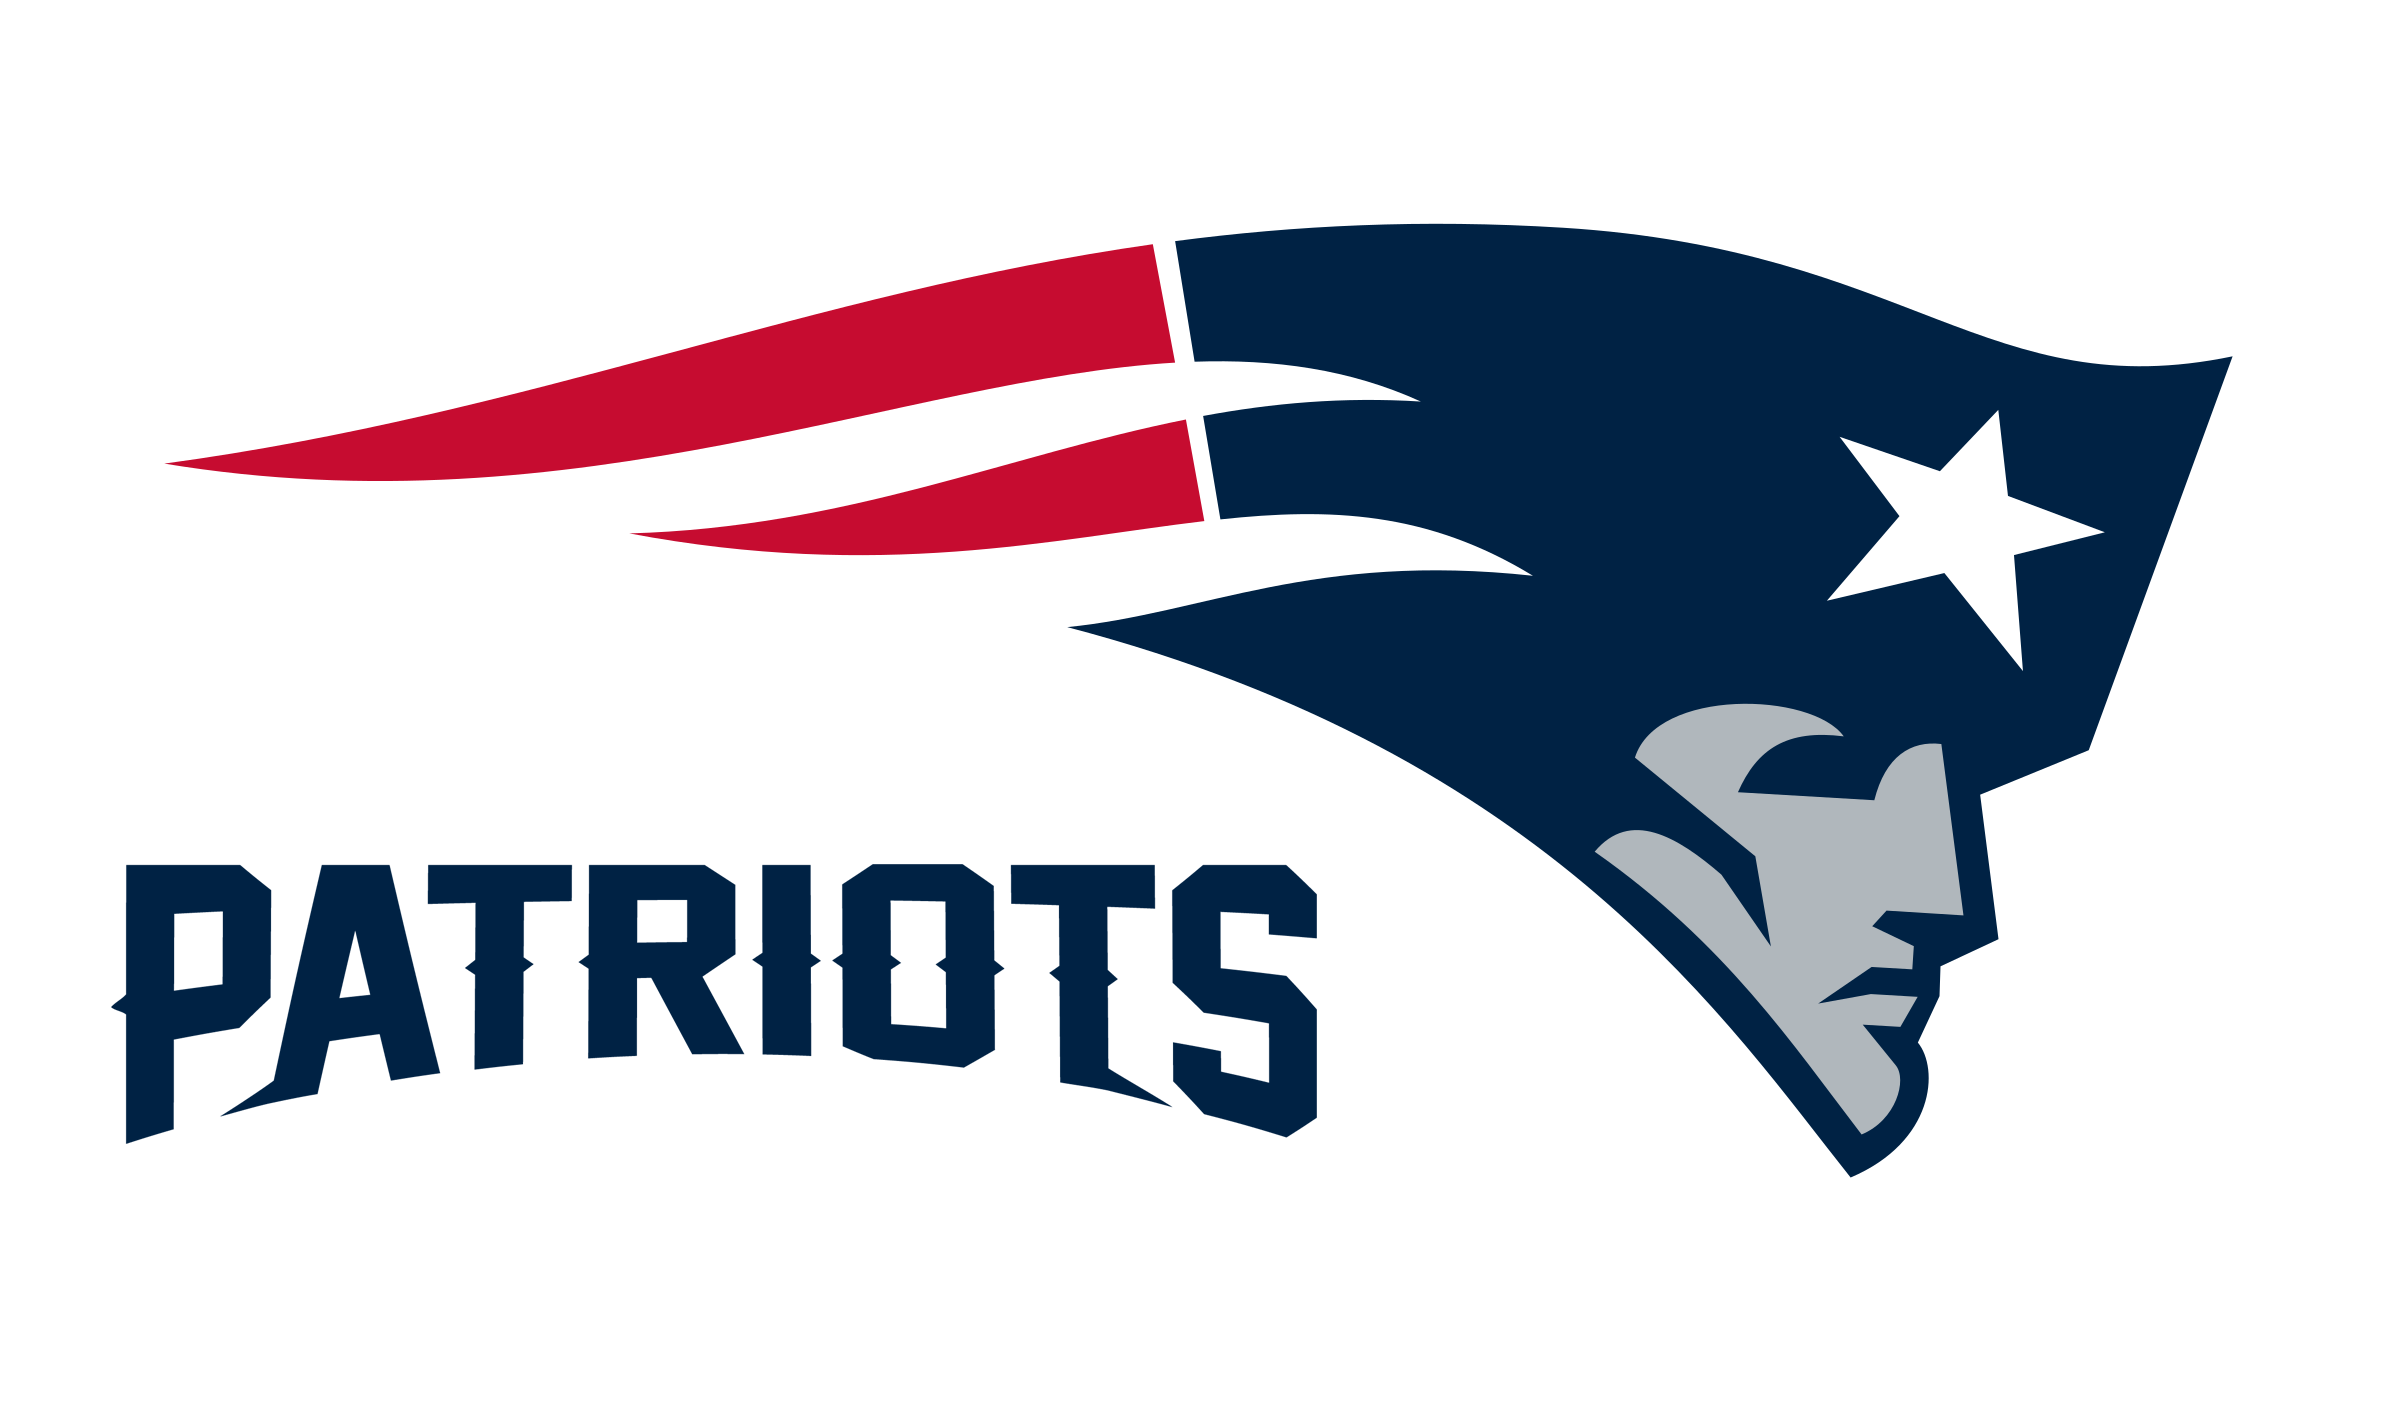 Pin by E on Clip art New england patriots wallpaper, New